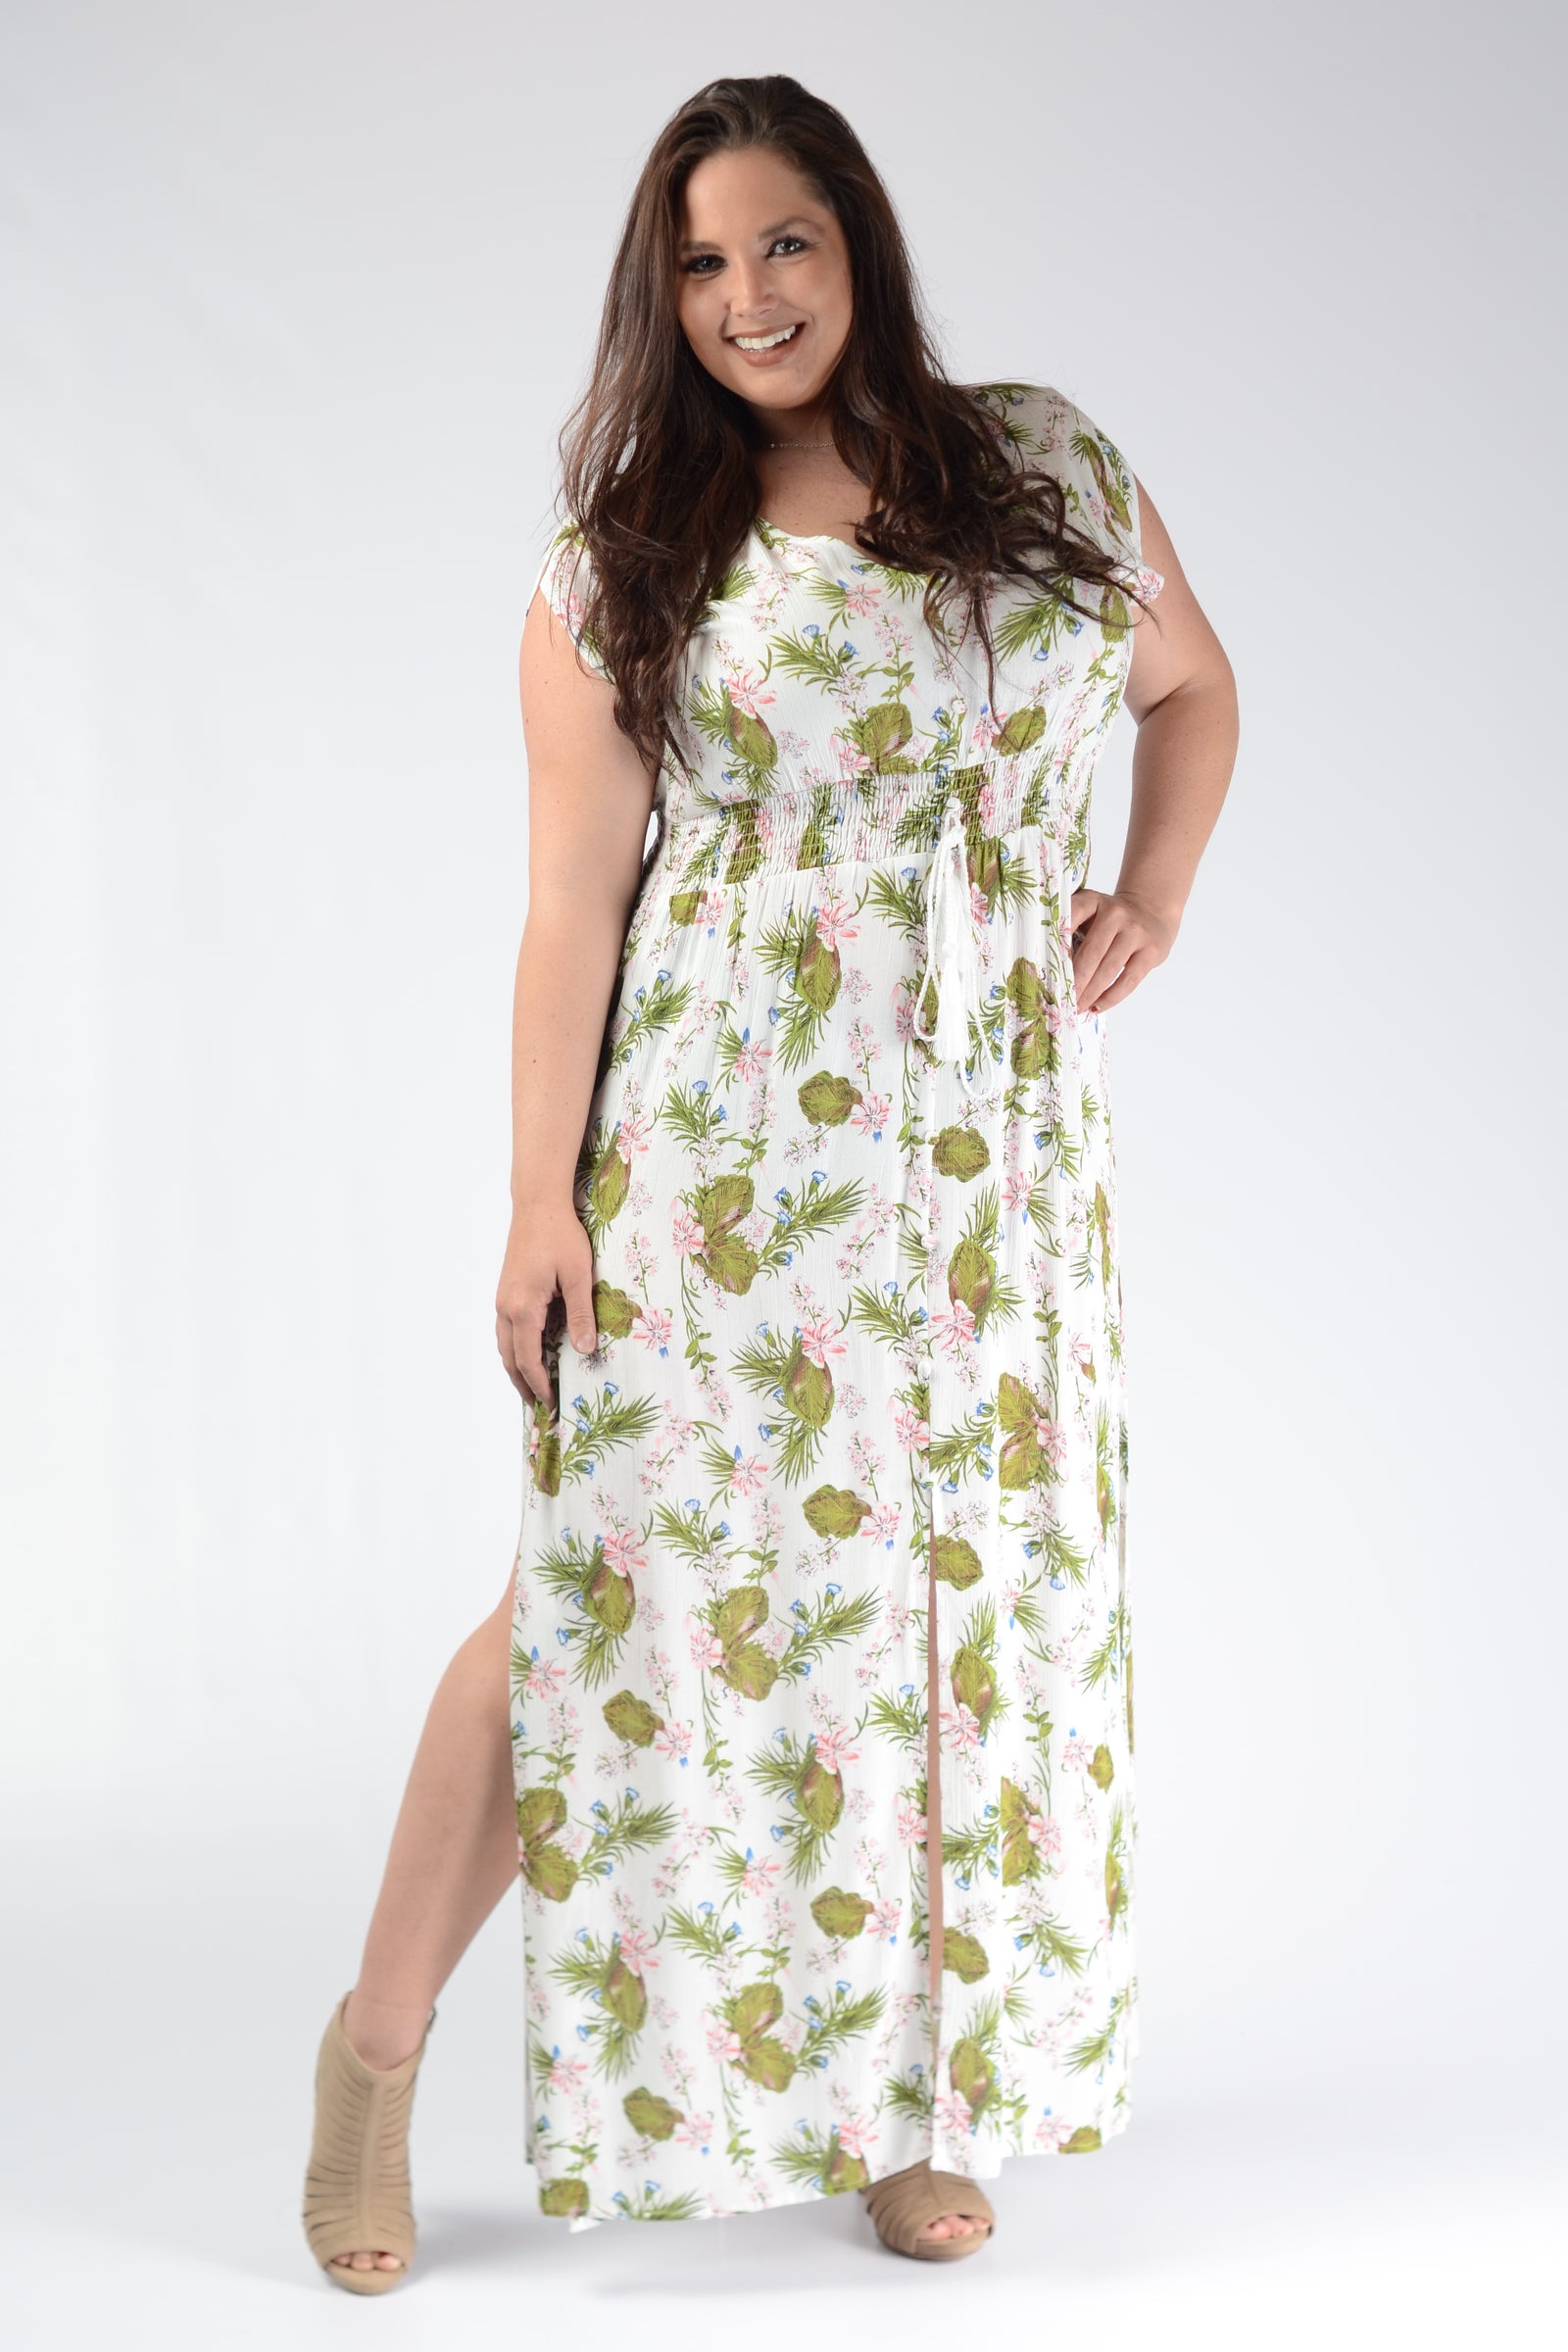 White Button Down Maxi Dress - www.mycurvystore.com - Curvy Boutique - Plus Size